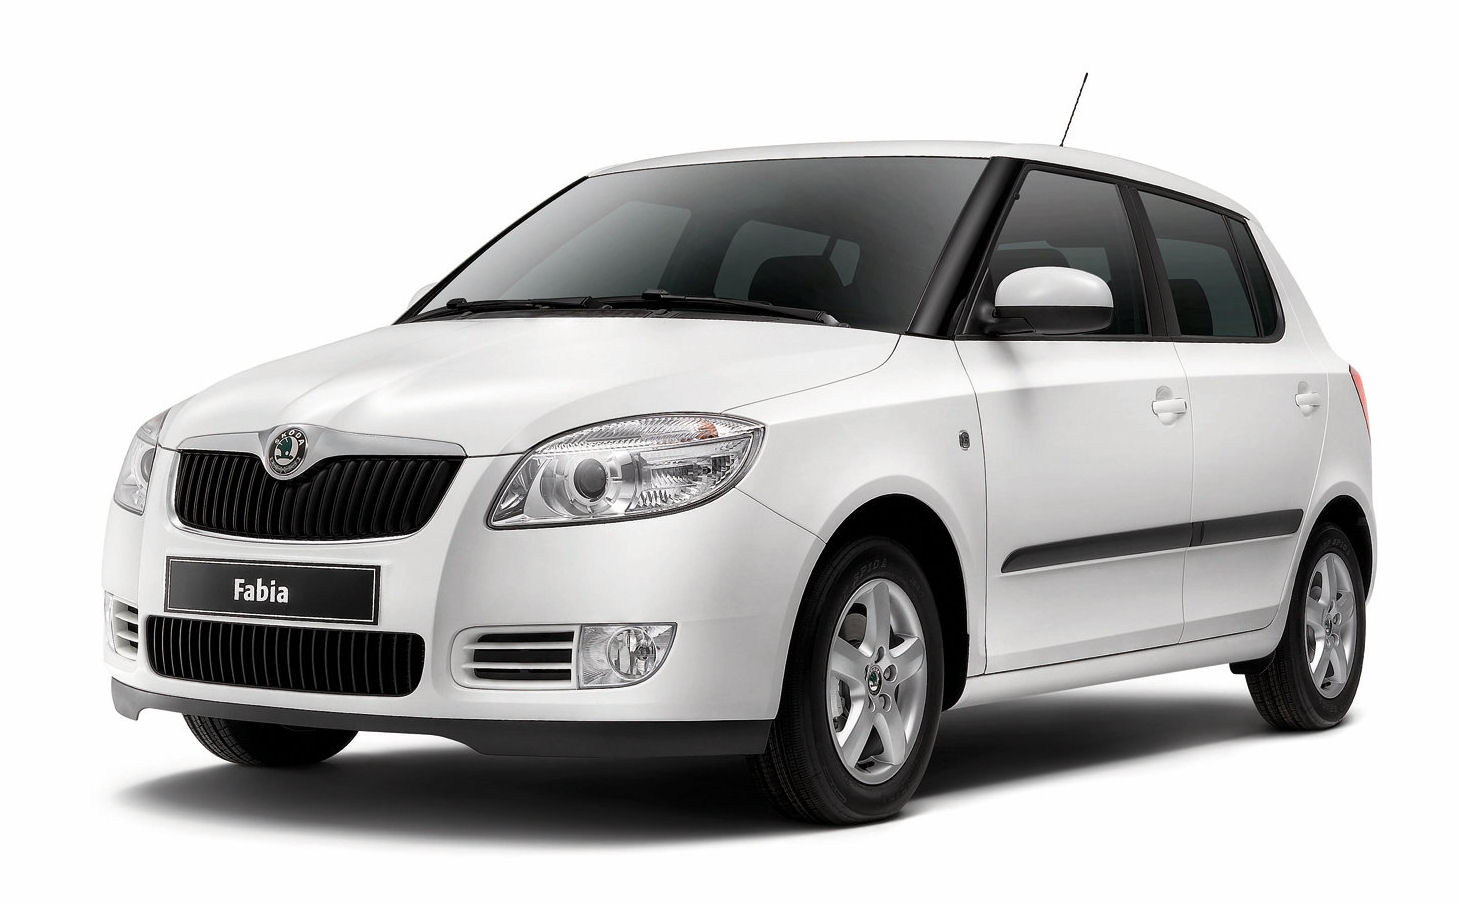 2013 skoda fabia ii pictures information and specs. Black Bedroom Furniture Sets. Home Design Ideas